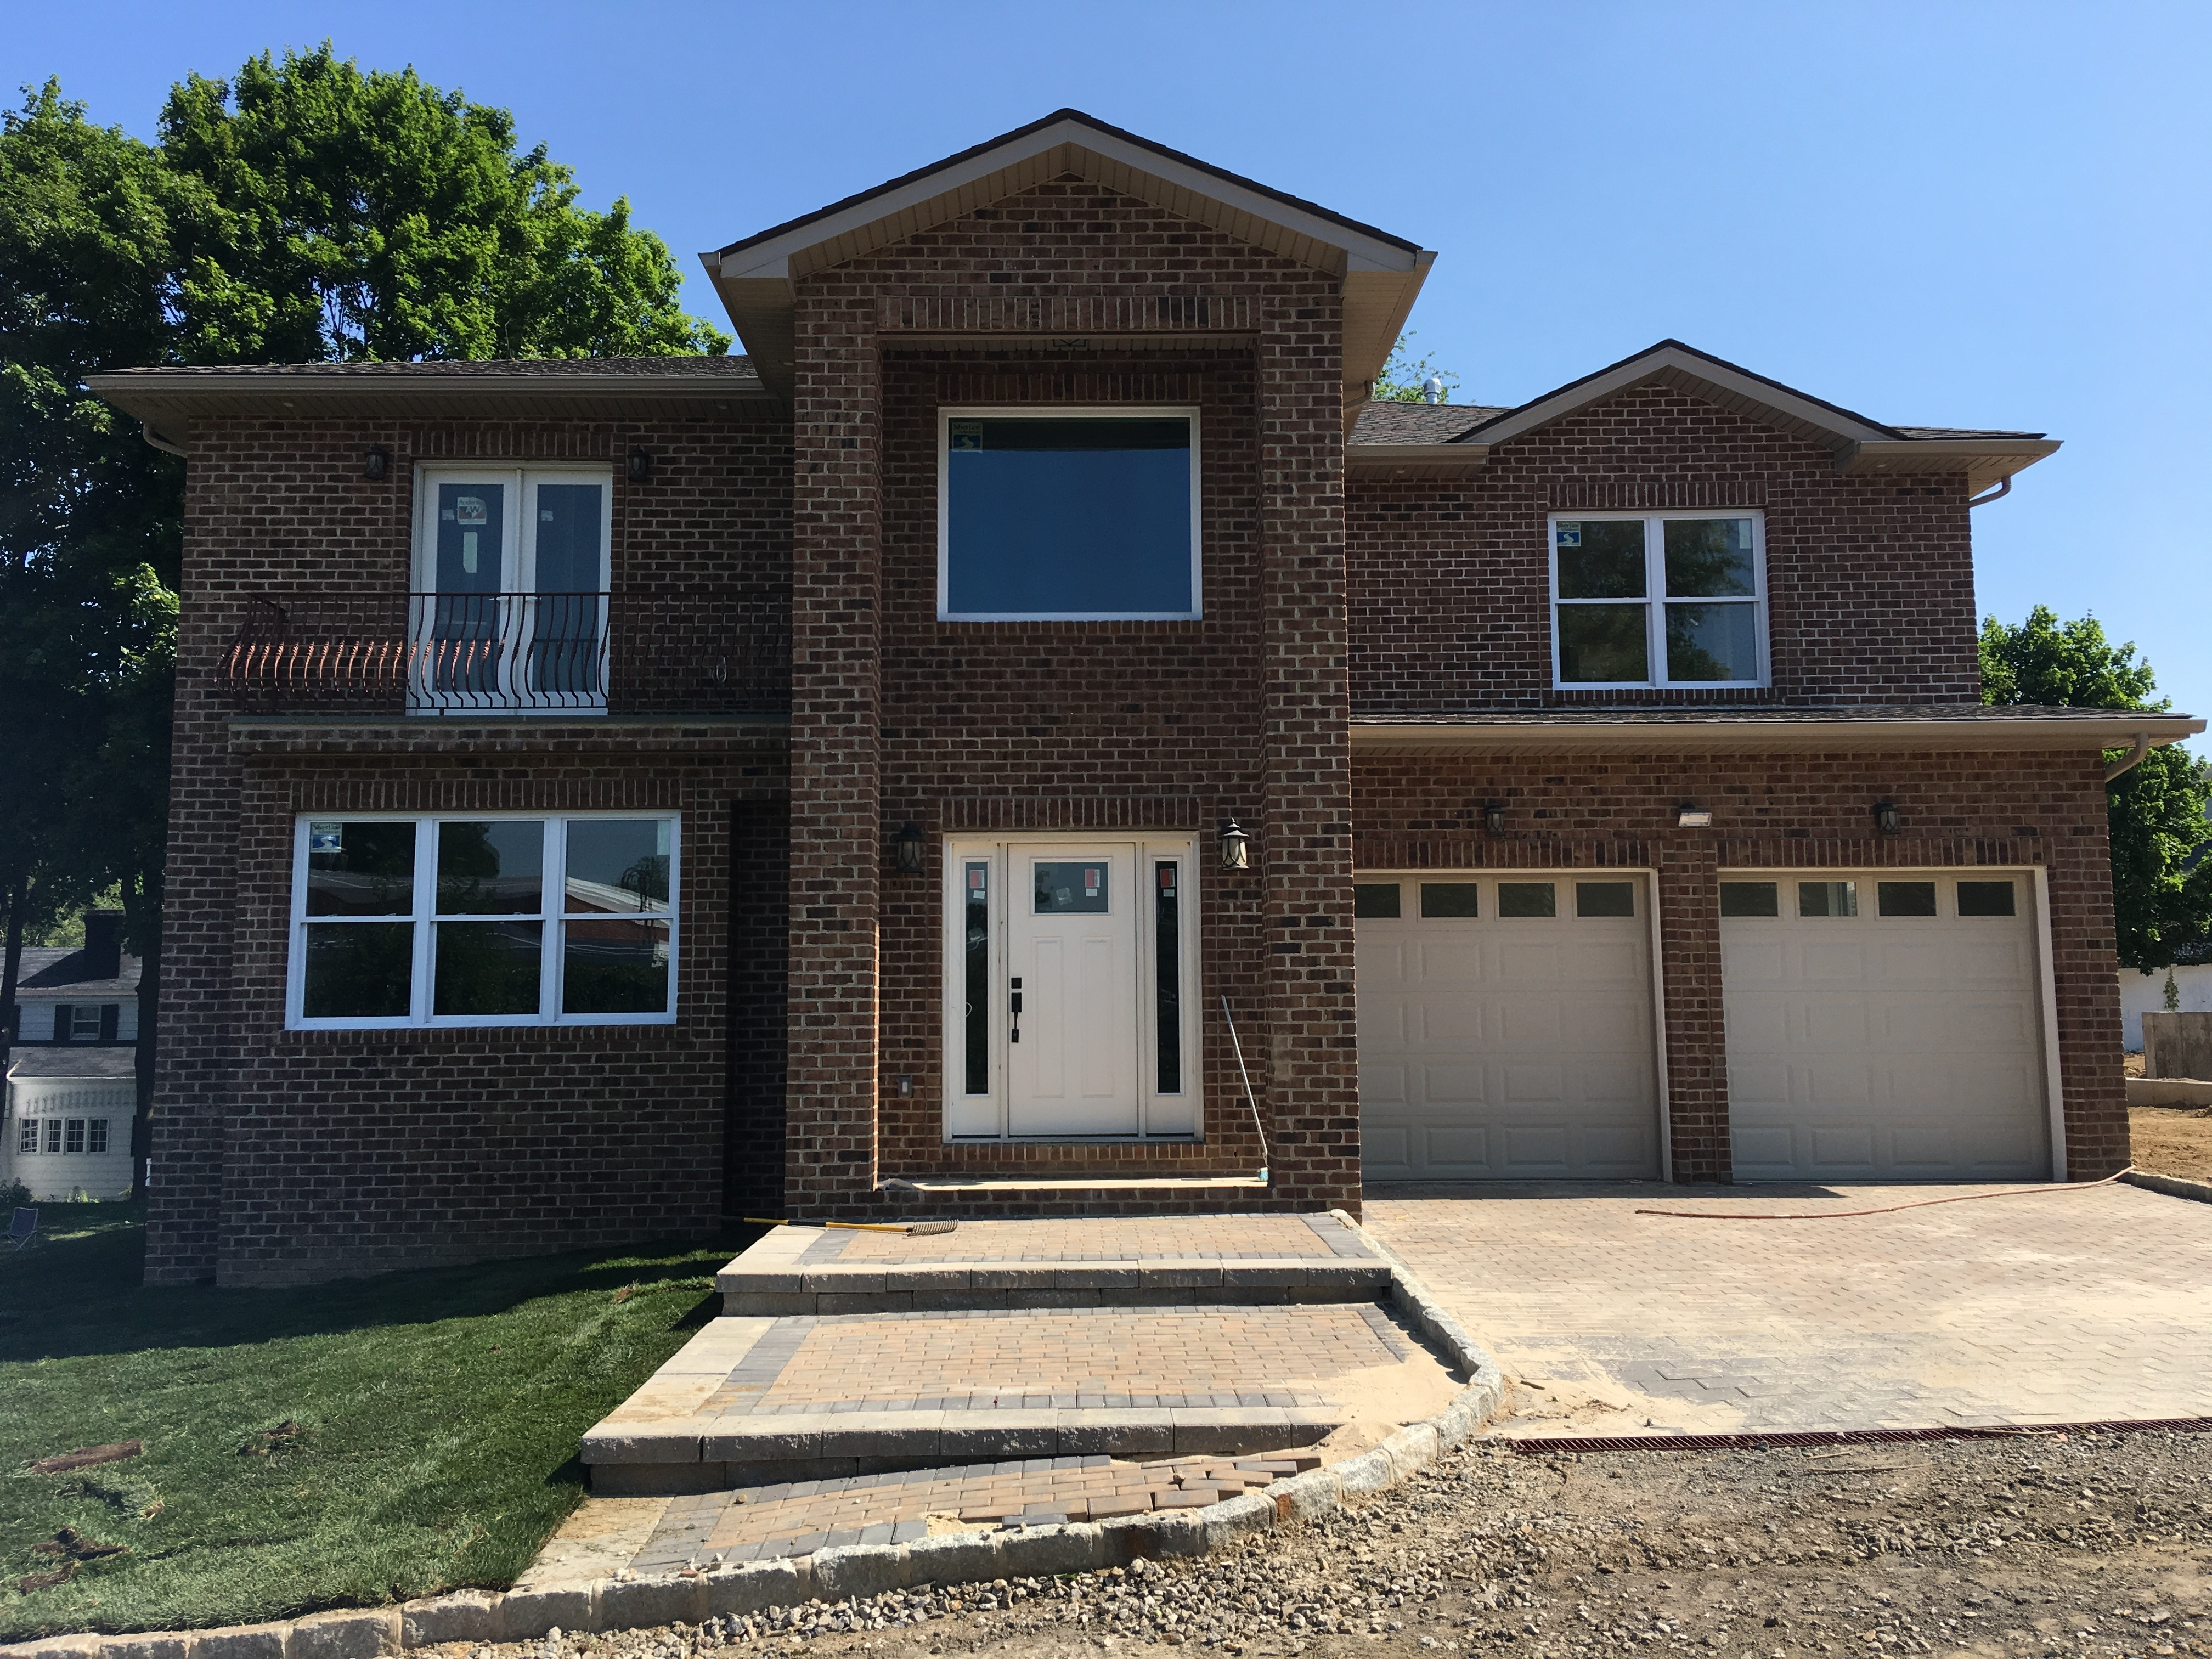 Single Family Home for Sale at New Build On Gorgeous Flat in Colonial Heights 1 Courtside Terrace Yonkers, New York, 10710 United States